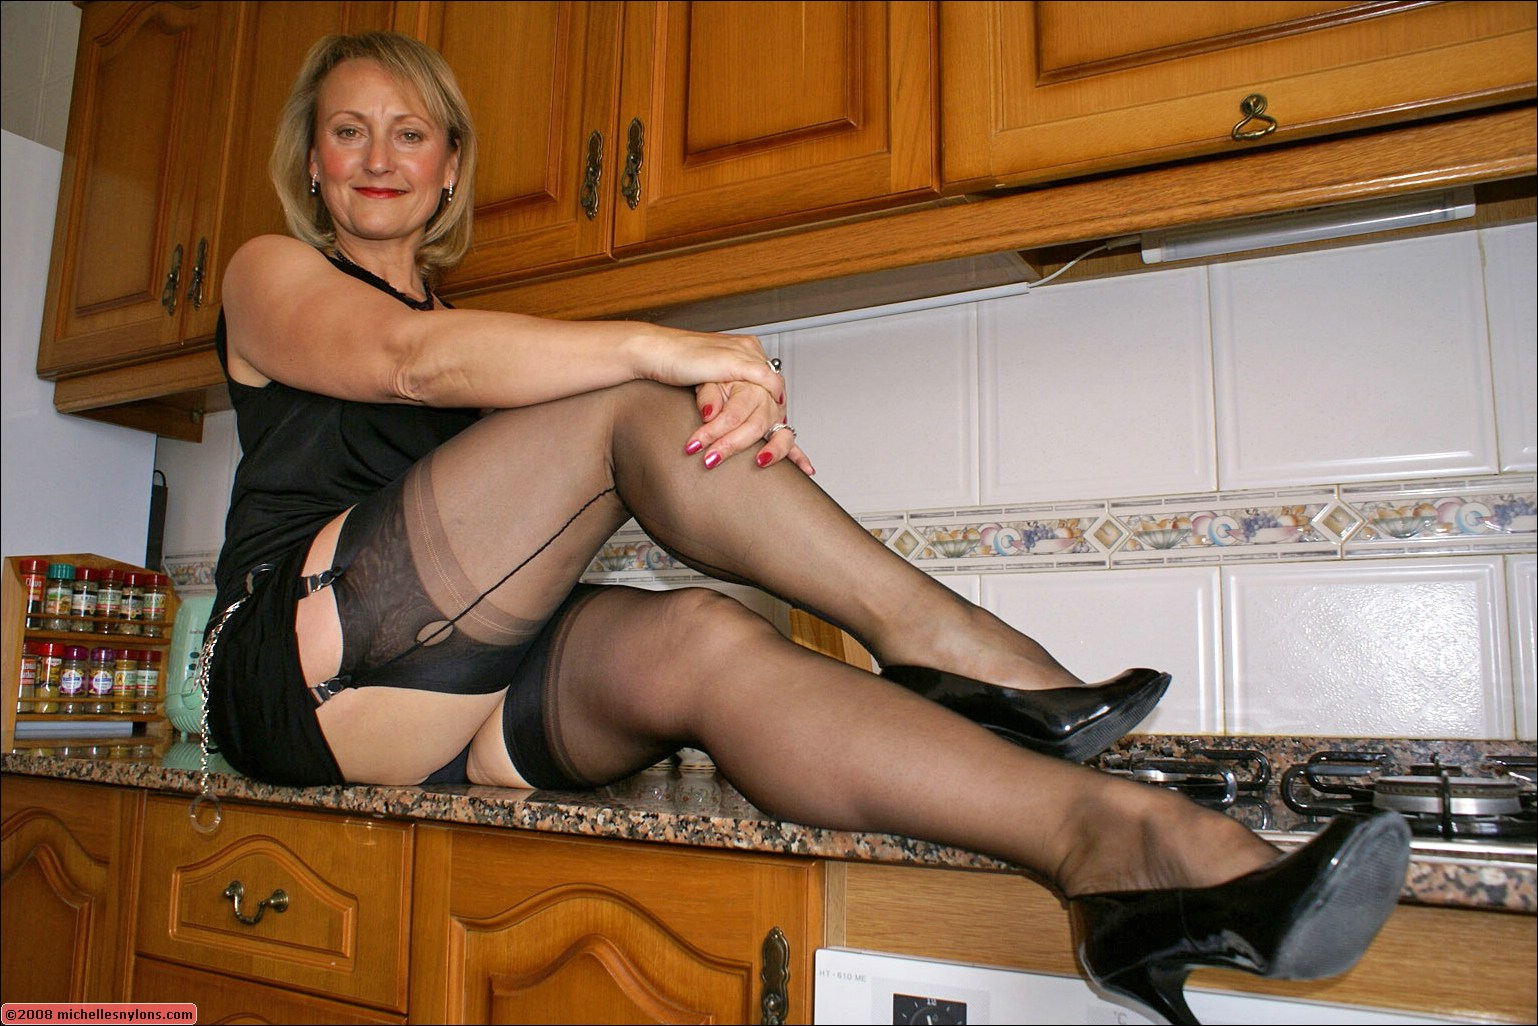 Michelles Nylons Free Pictures And Video From ...